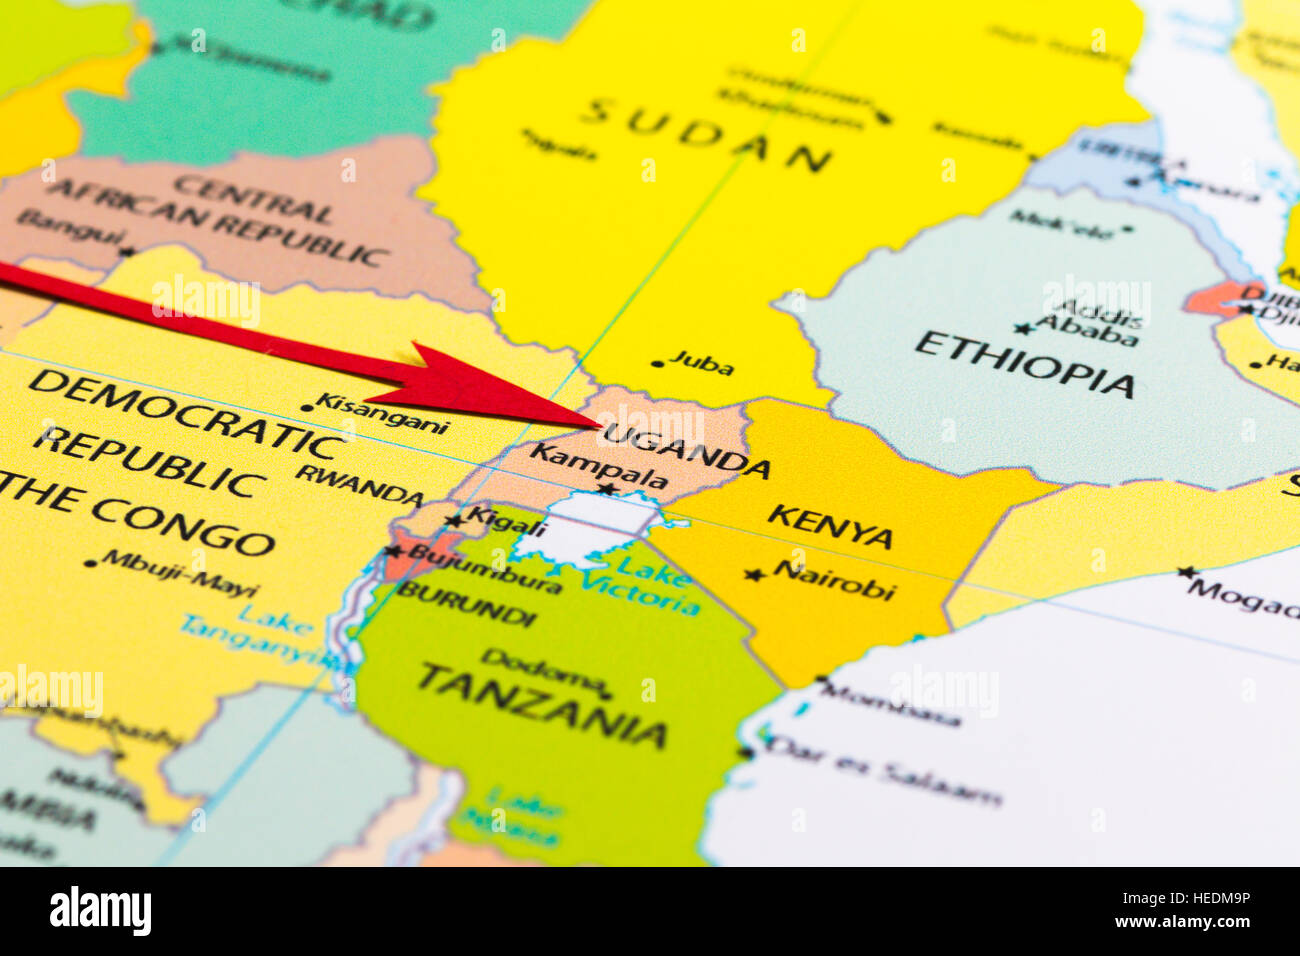 Red arrow pointing Uganda on the map of Africa continent Stock Photo